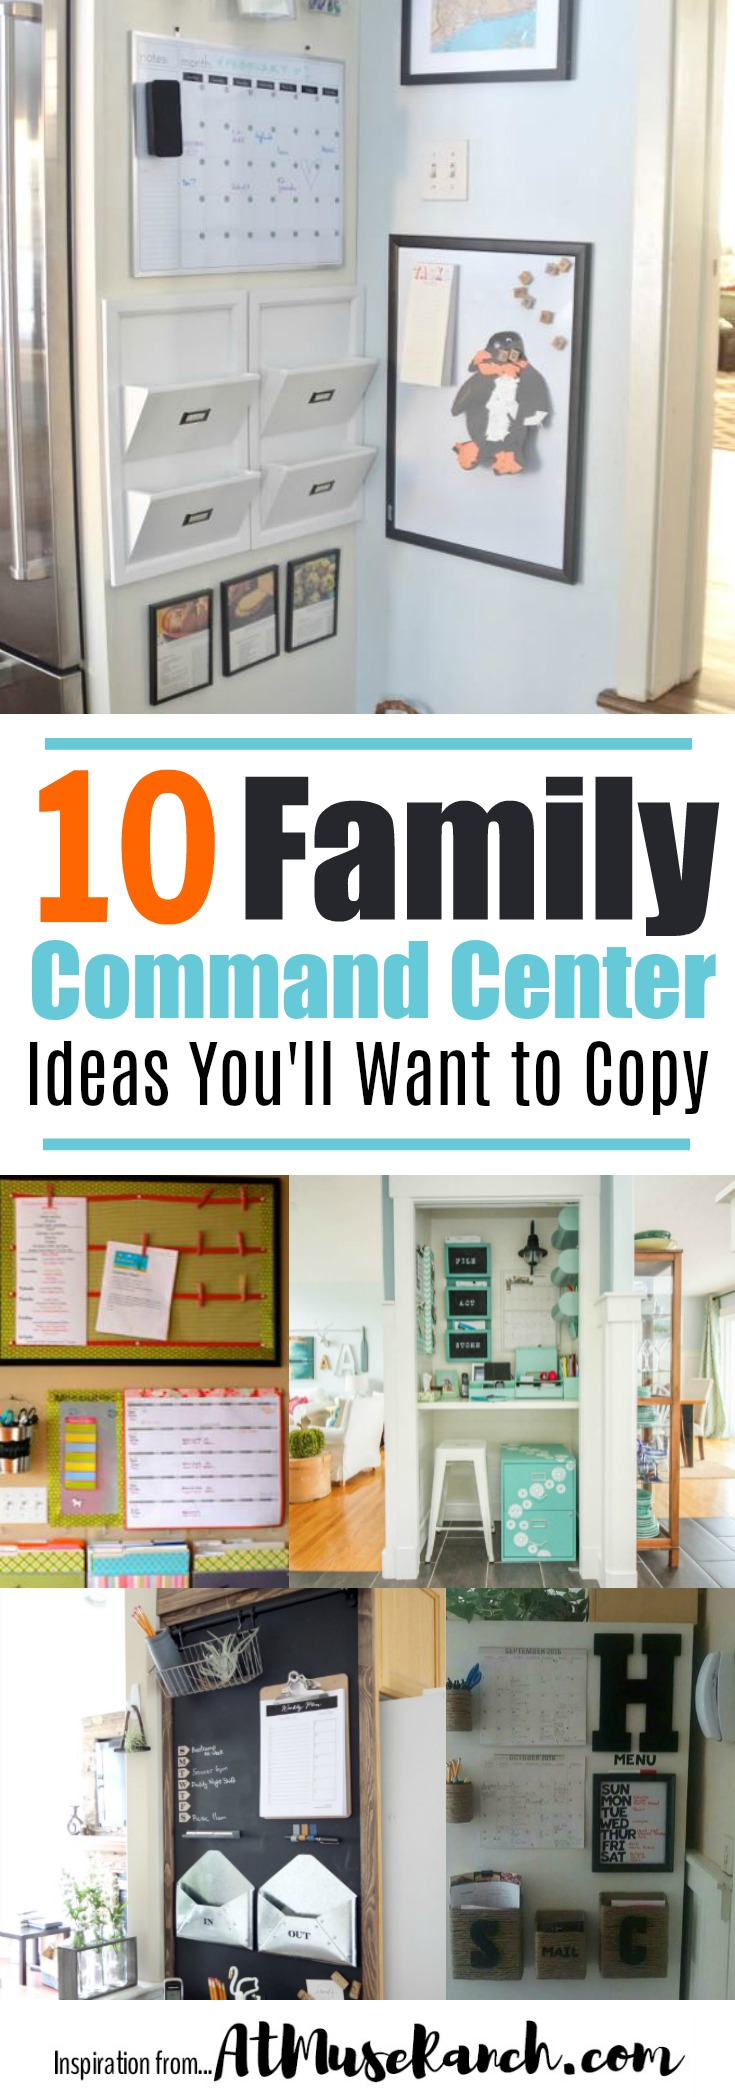 Family Command Center Ideas